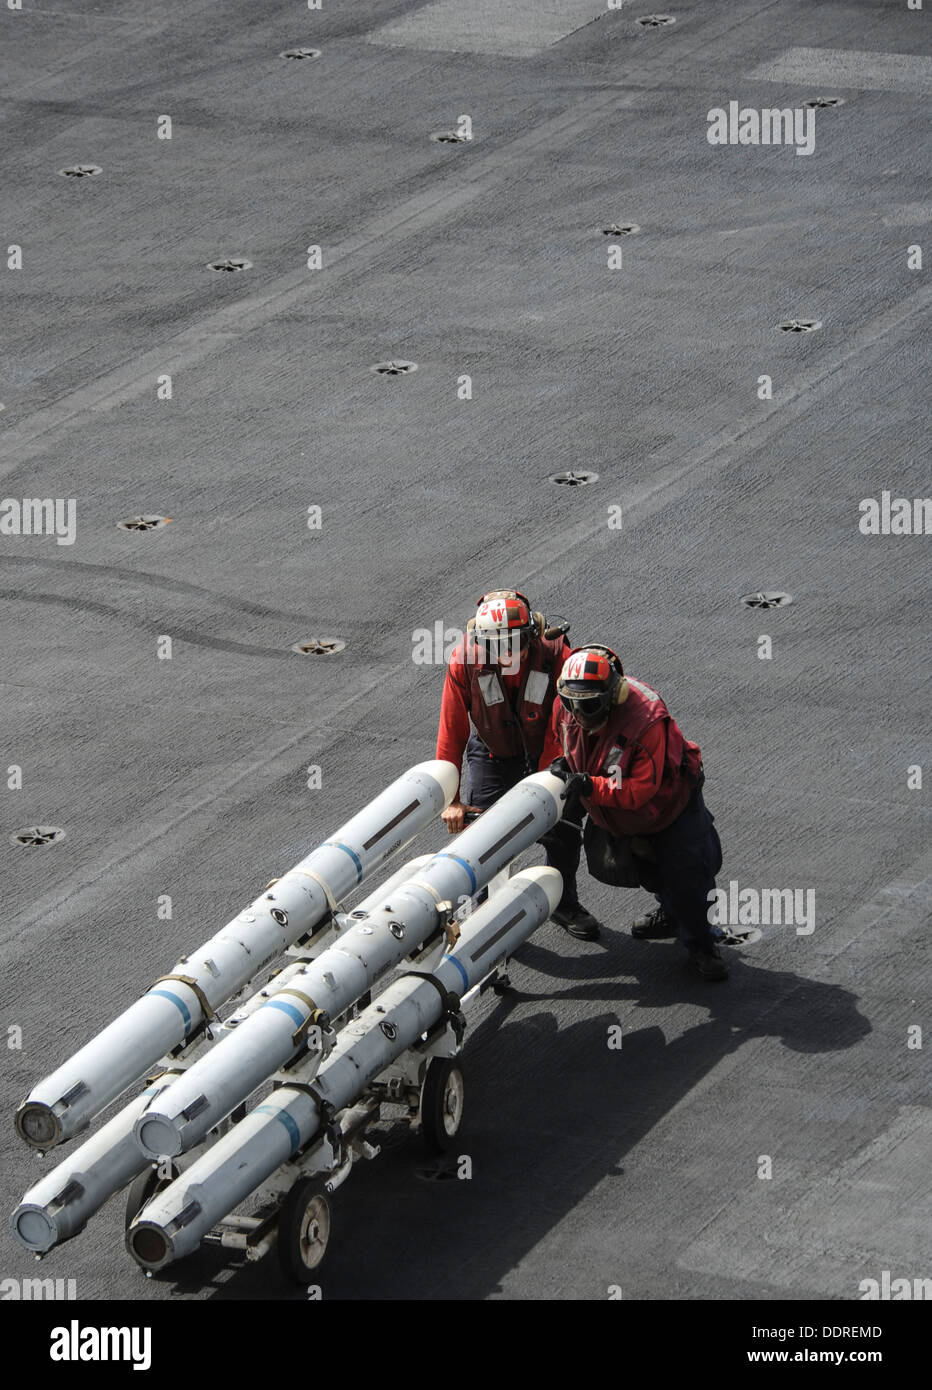 Aviation Ordnancemen 3rd Class Brendan Tuller, left, and Lashell Richmond, both assigned to the Argonauts of Strike Fighter Squadron (VFA) 147, push ordnance across the flight deck of the aircraft carrier USS Nimitz (CVN 68). The Nimitz Carrier Strike Gro - Stock Image